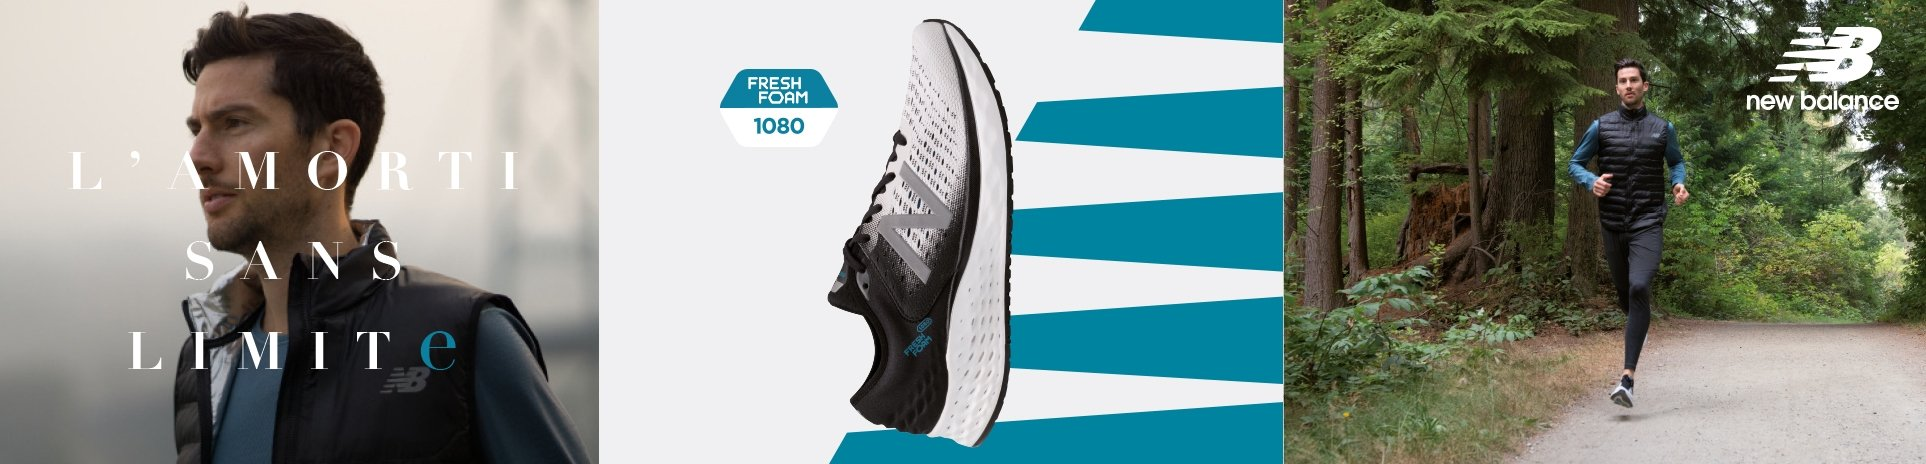 New Balance Fresh Foam 1080v9 homme